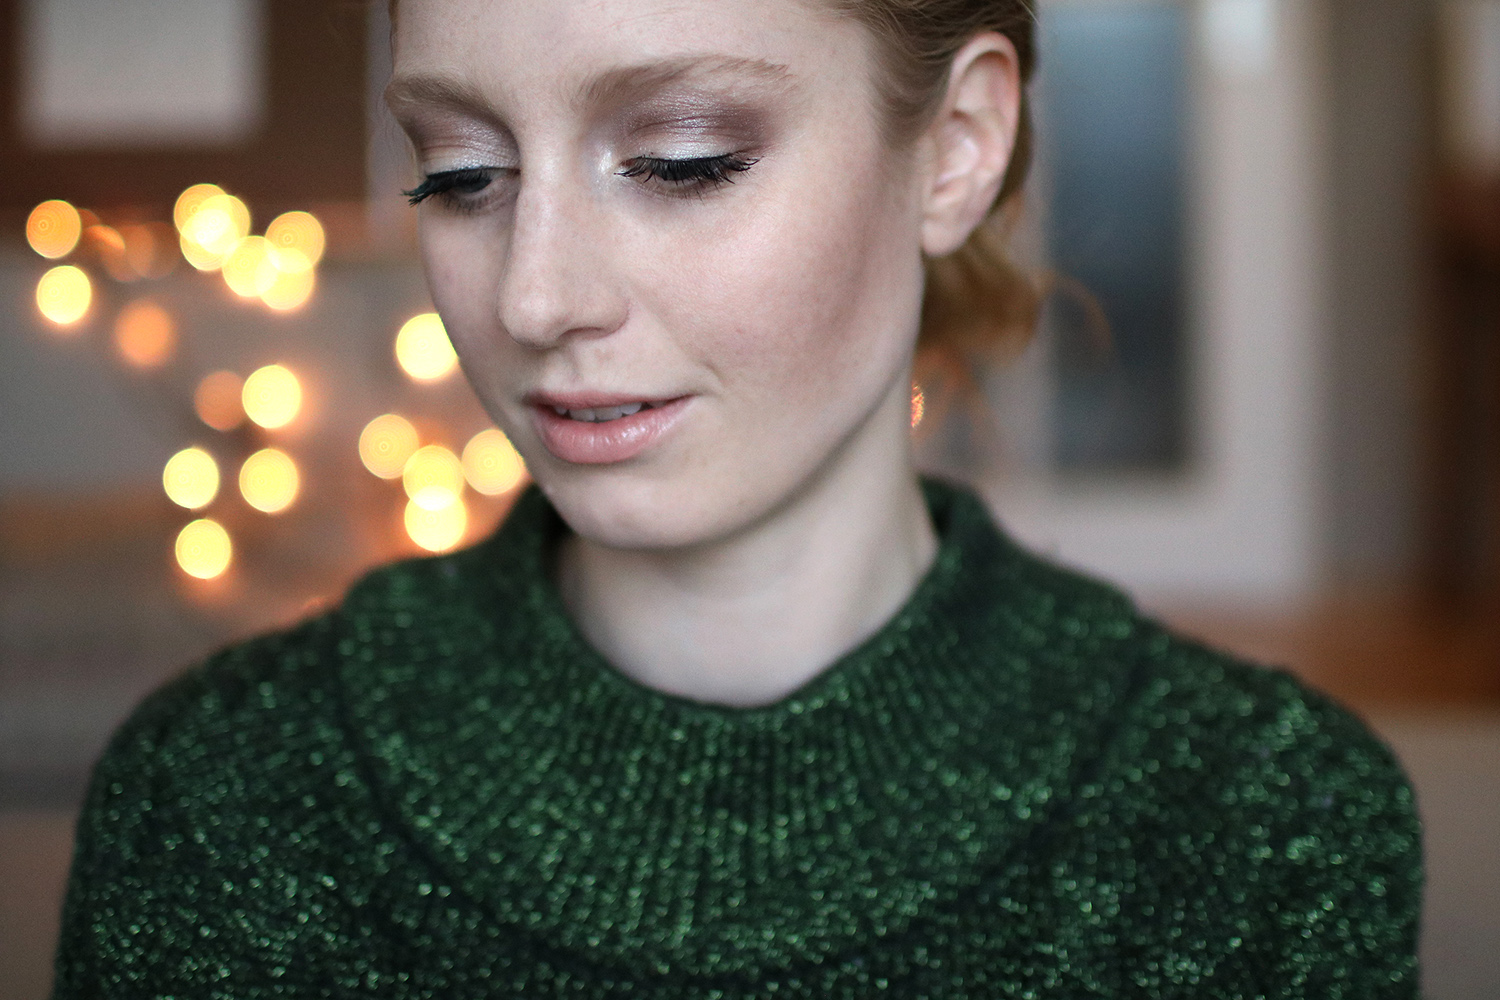 Advance Your Style, Beautyblog, Berlin, Youtube, Video, Makeup Tutorial, Winter 2015, Winter Look, dunkles Augenmakeup,